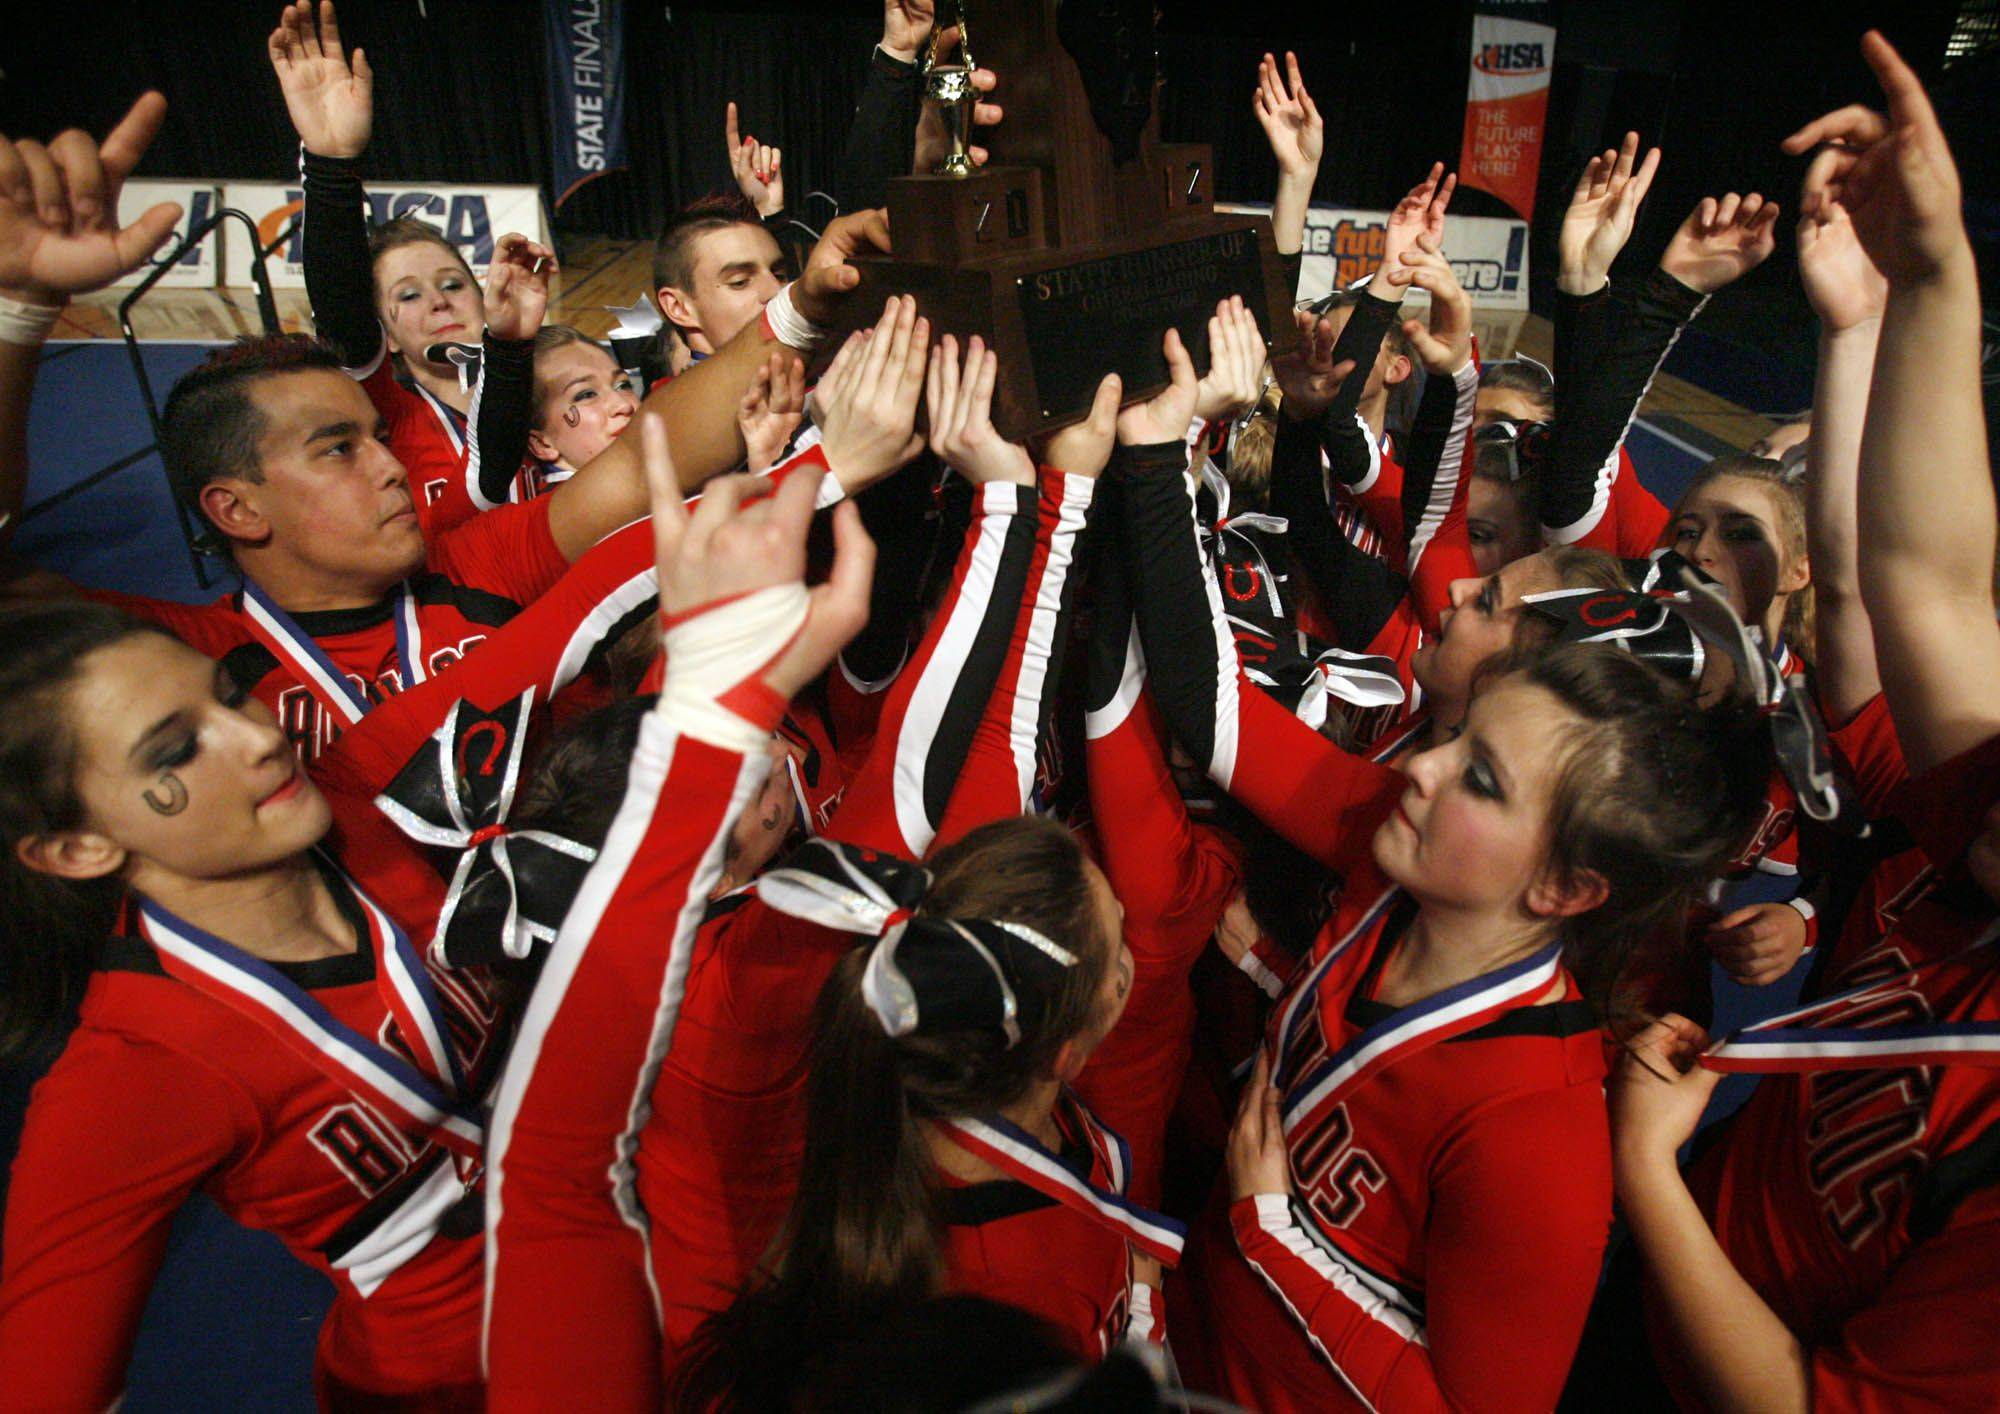 Barrington celebrates with the 2nd place trophy for the coed division at IHSA cheerleading state finals at U.S. Cellular Coliseum in Bloomington on Saturday, February 4th.